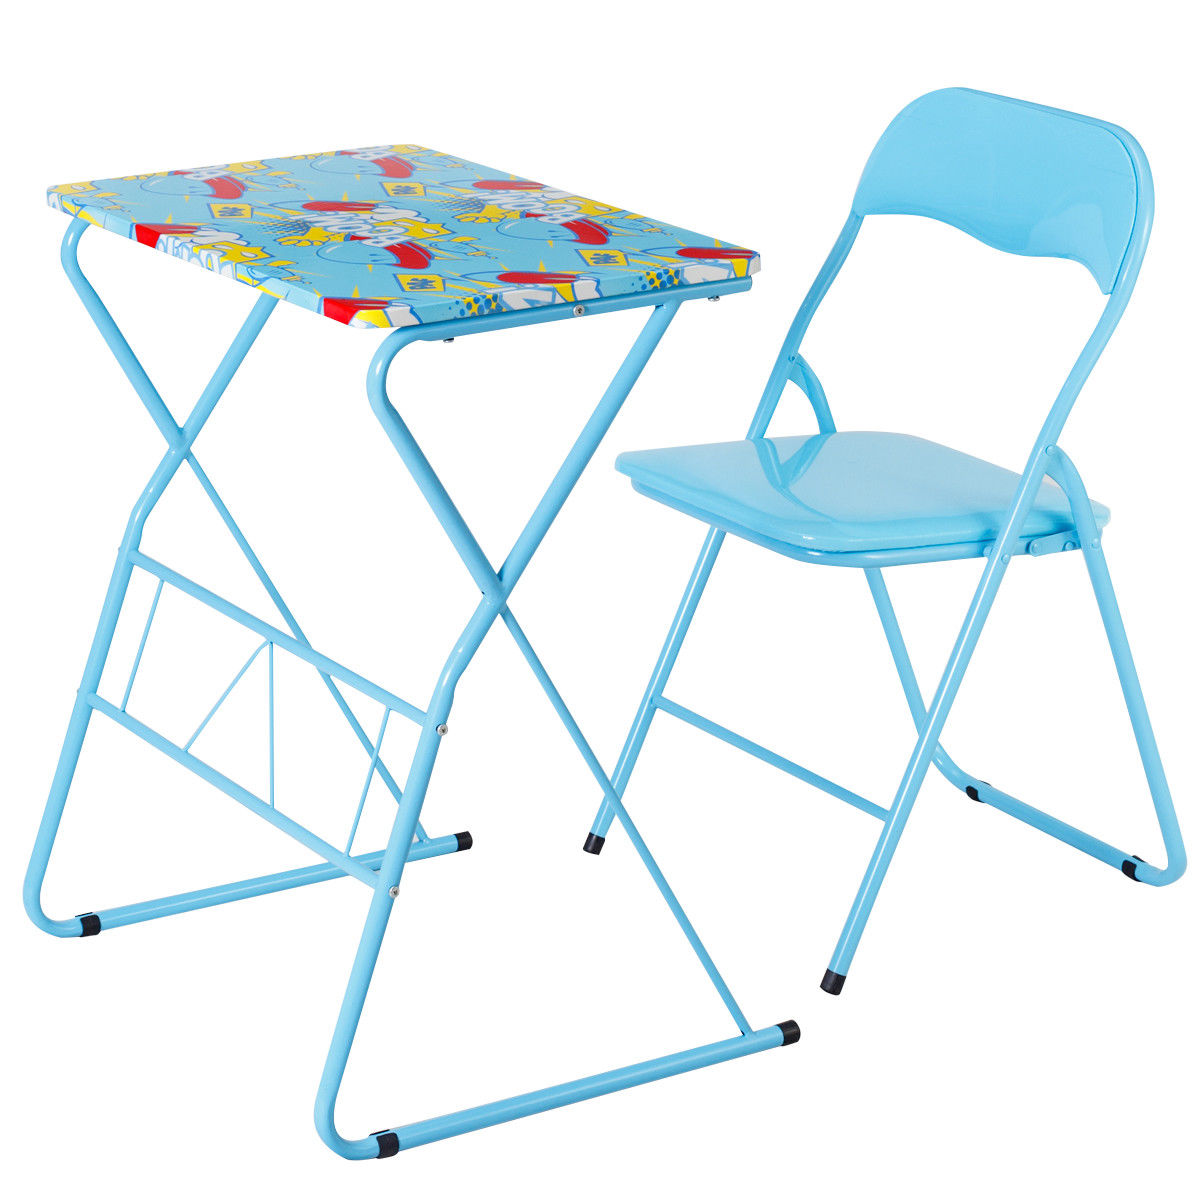 Costway Kids Folding Table Chair Set Study Writing Desk Student Children Home School New